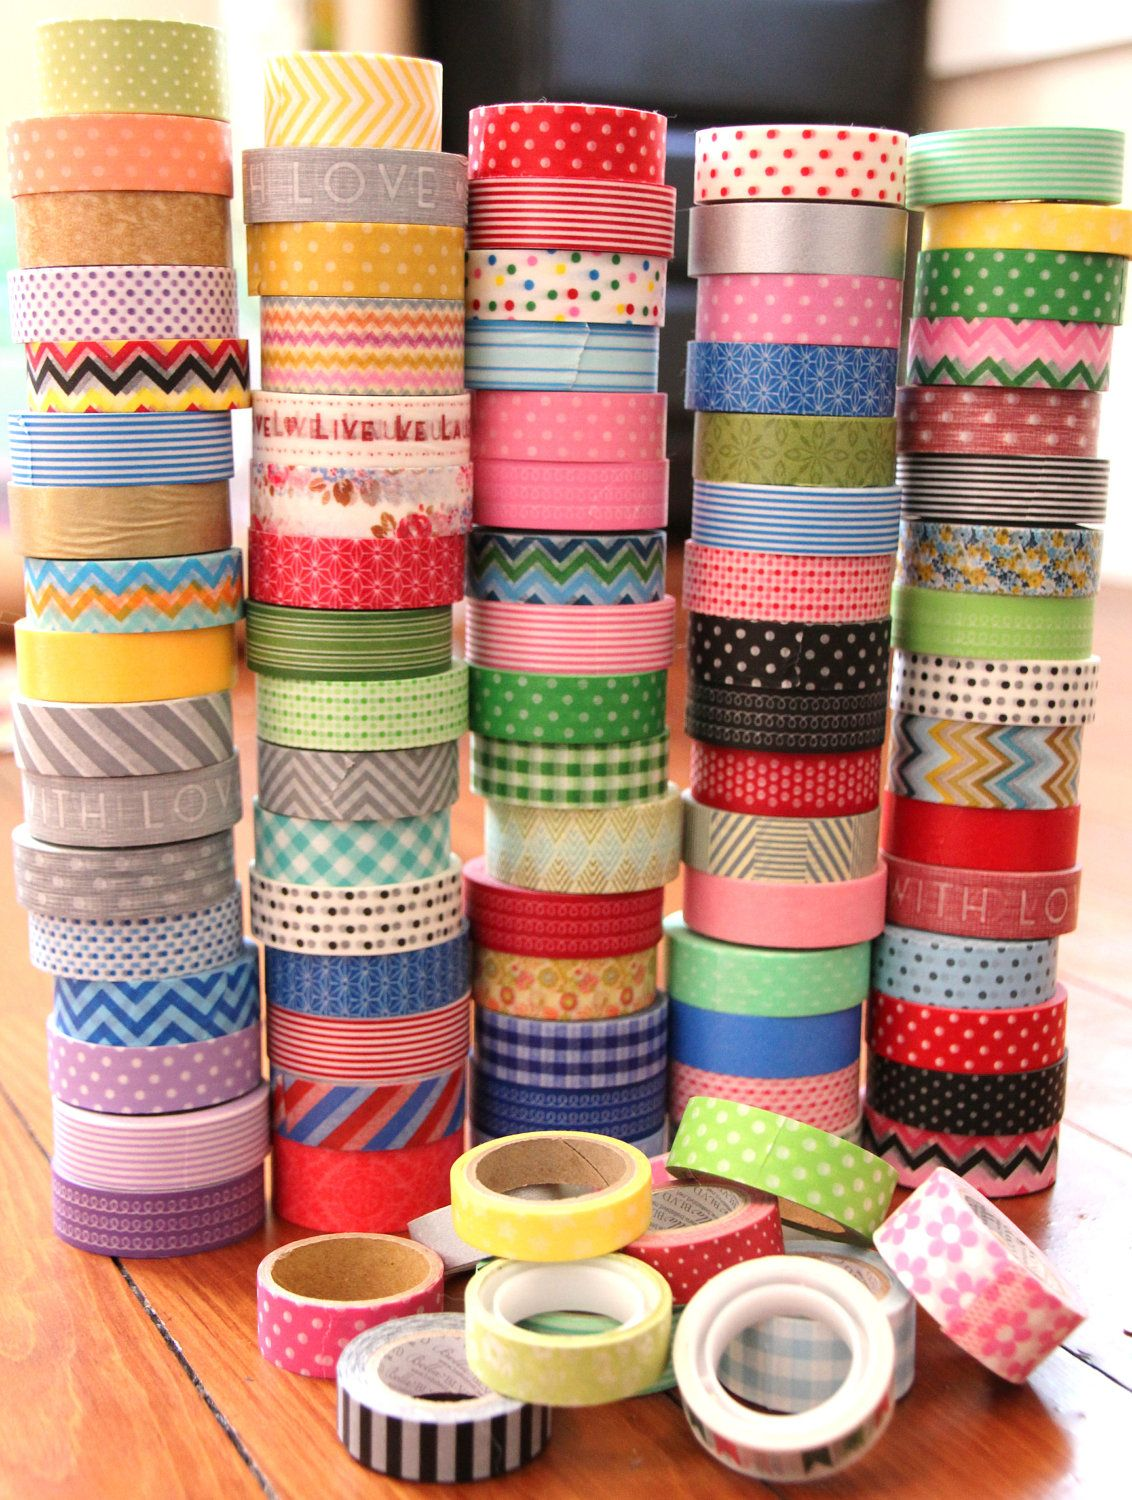 Washi Tape Washi Tape Pinterest Washi Tape Washi And Masking Tape